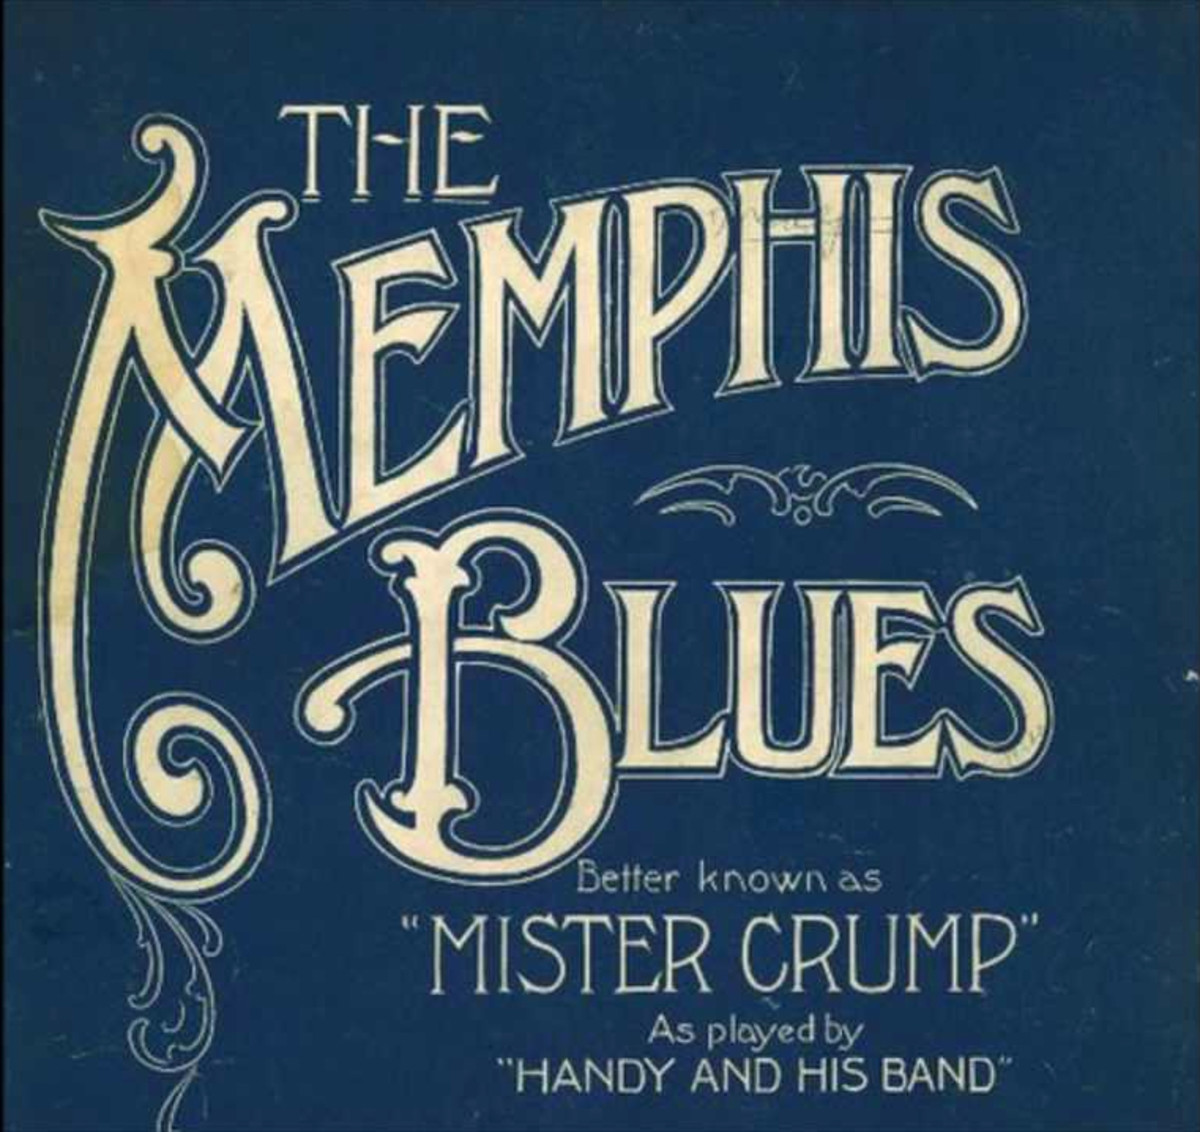 The Memphis Blues; which was formerly known as Mr. Crump Blues became famous as the first published blues song.